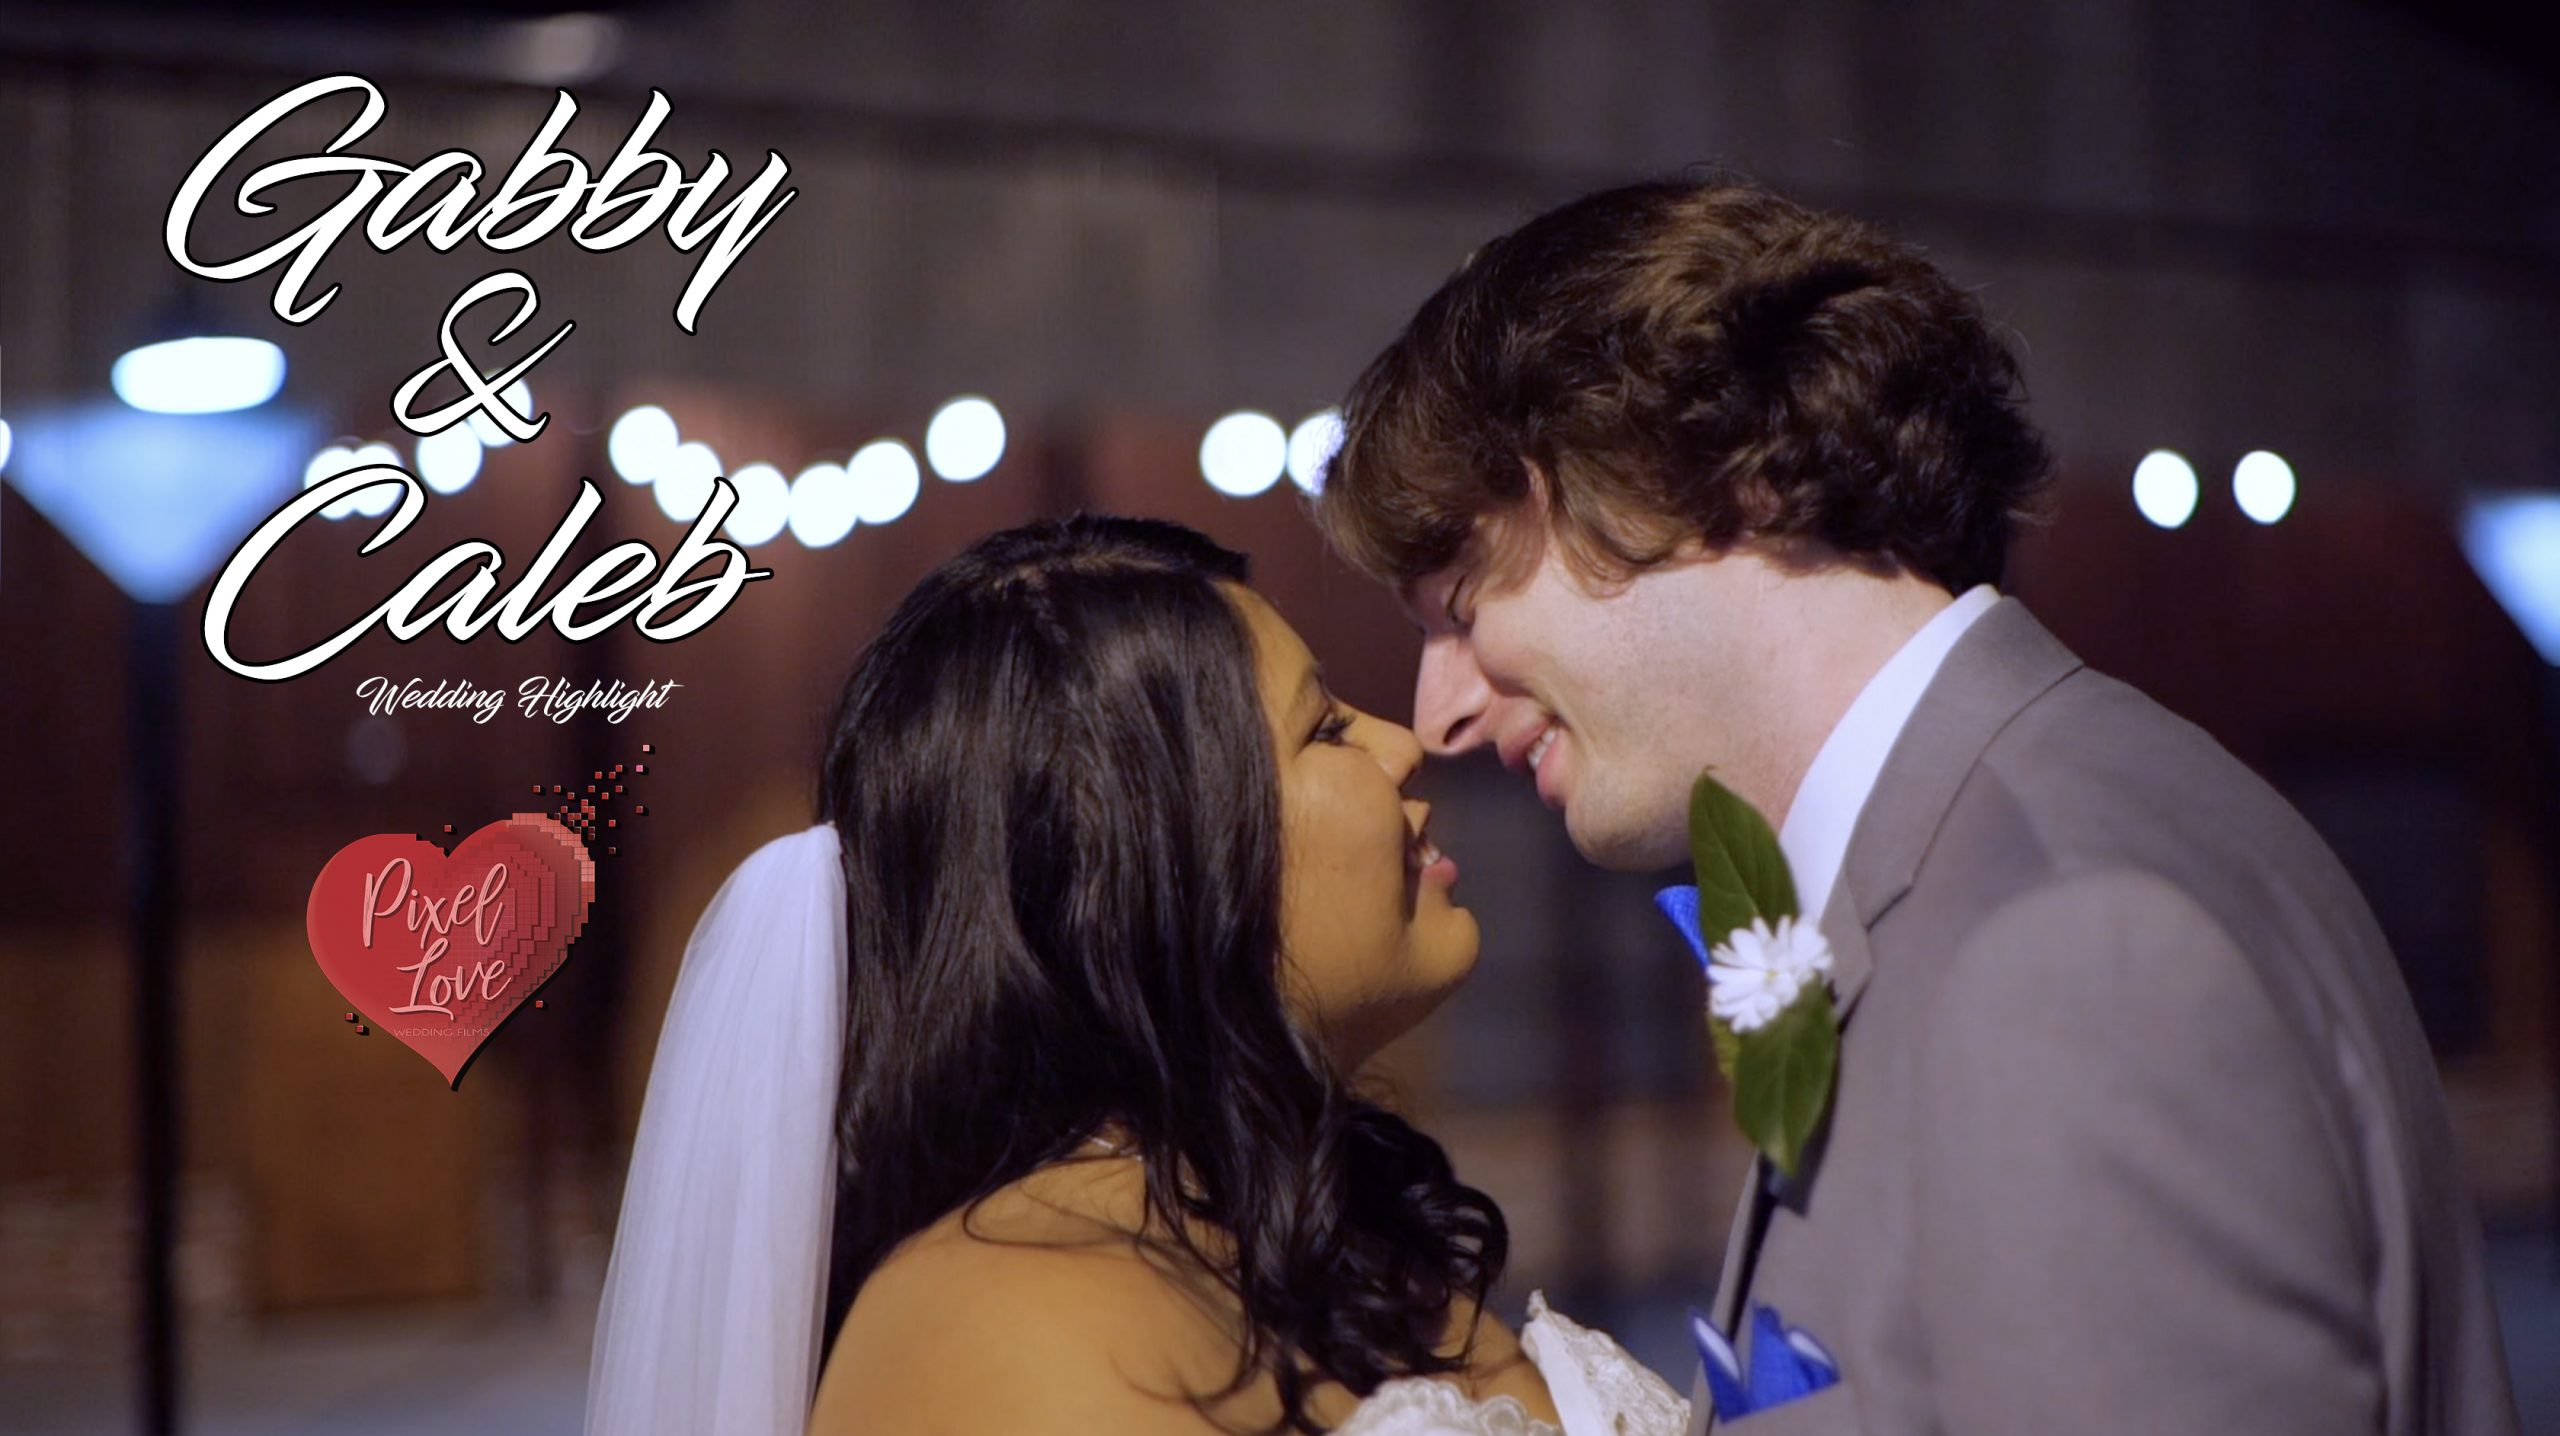 Gabby & Caleb – The Gin at Nesbit | Wedding Highlight Film